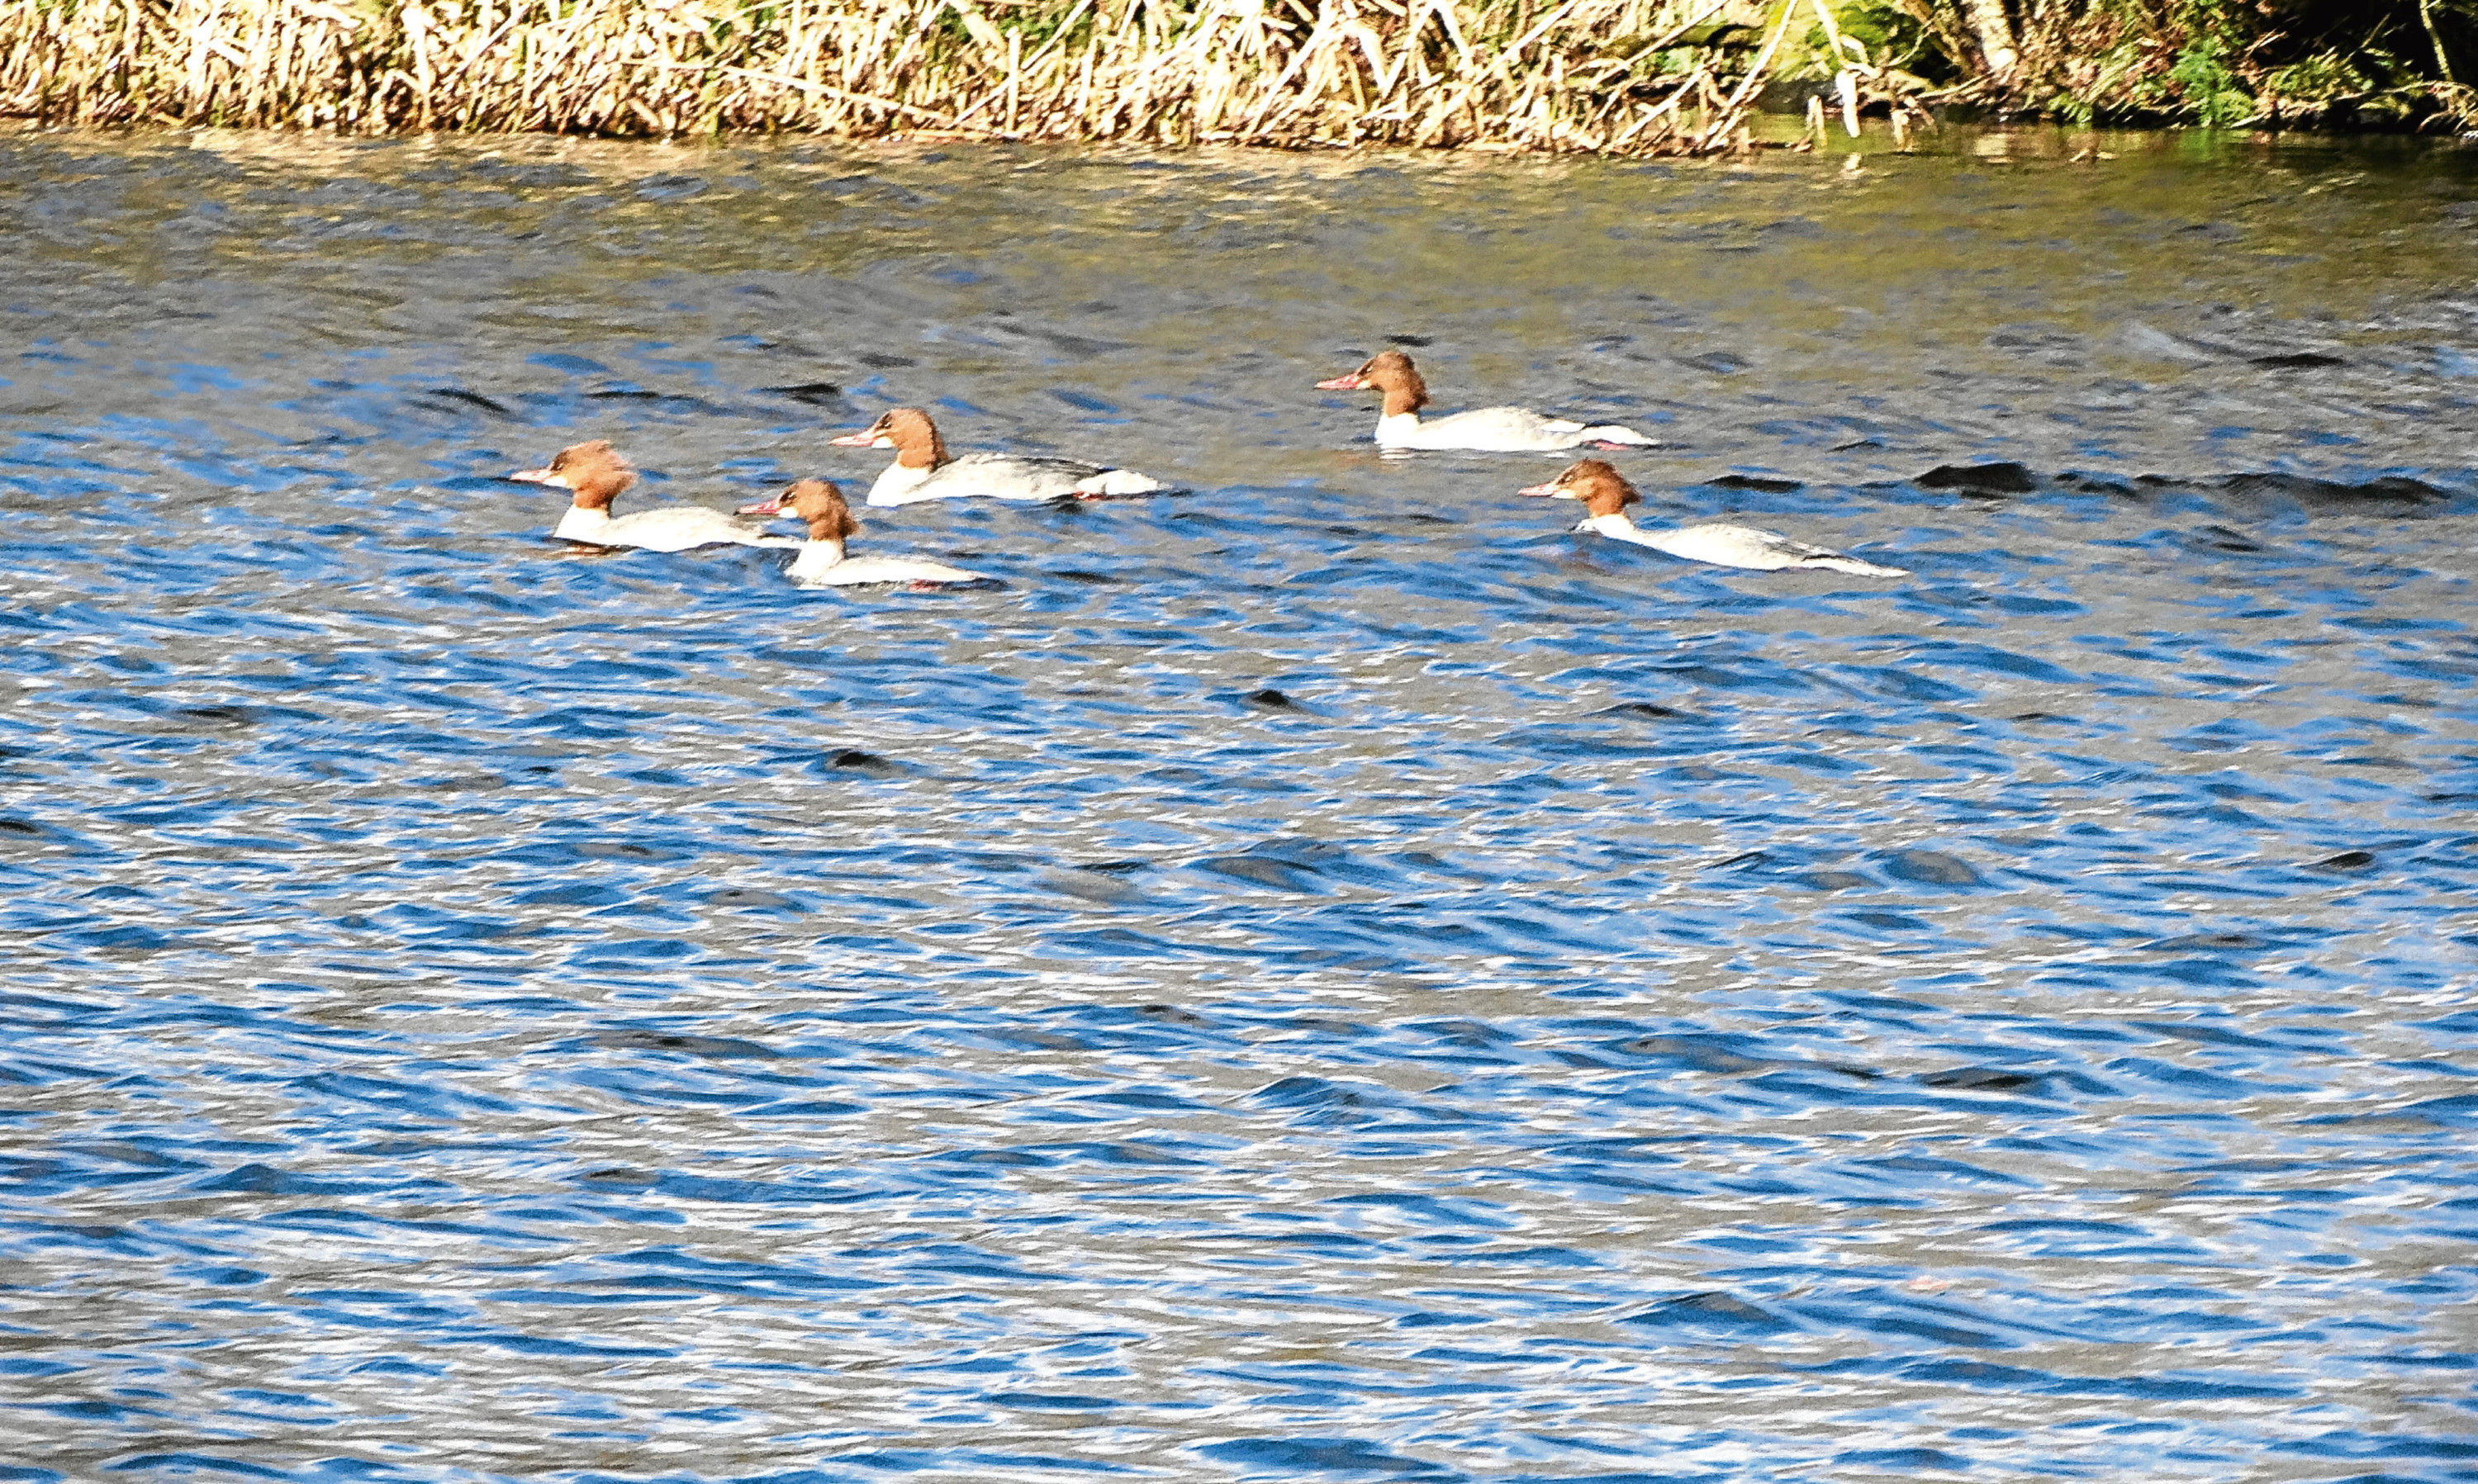 A flotilla of female and juvenile goosanders